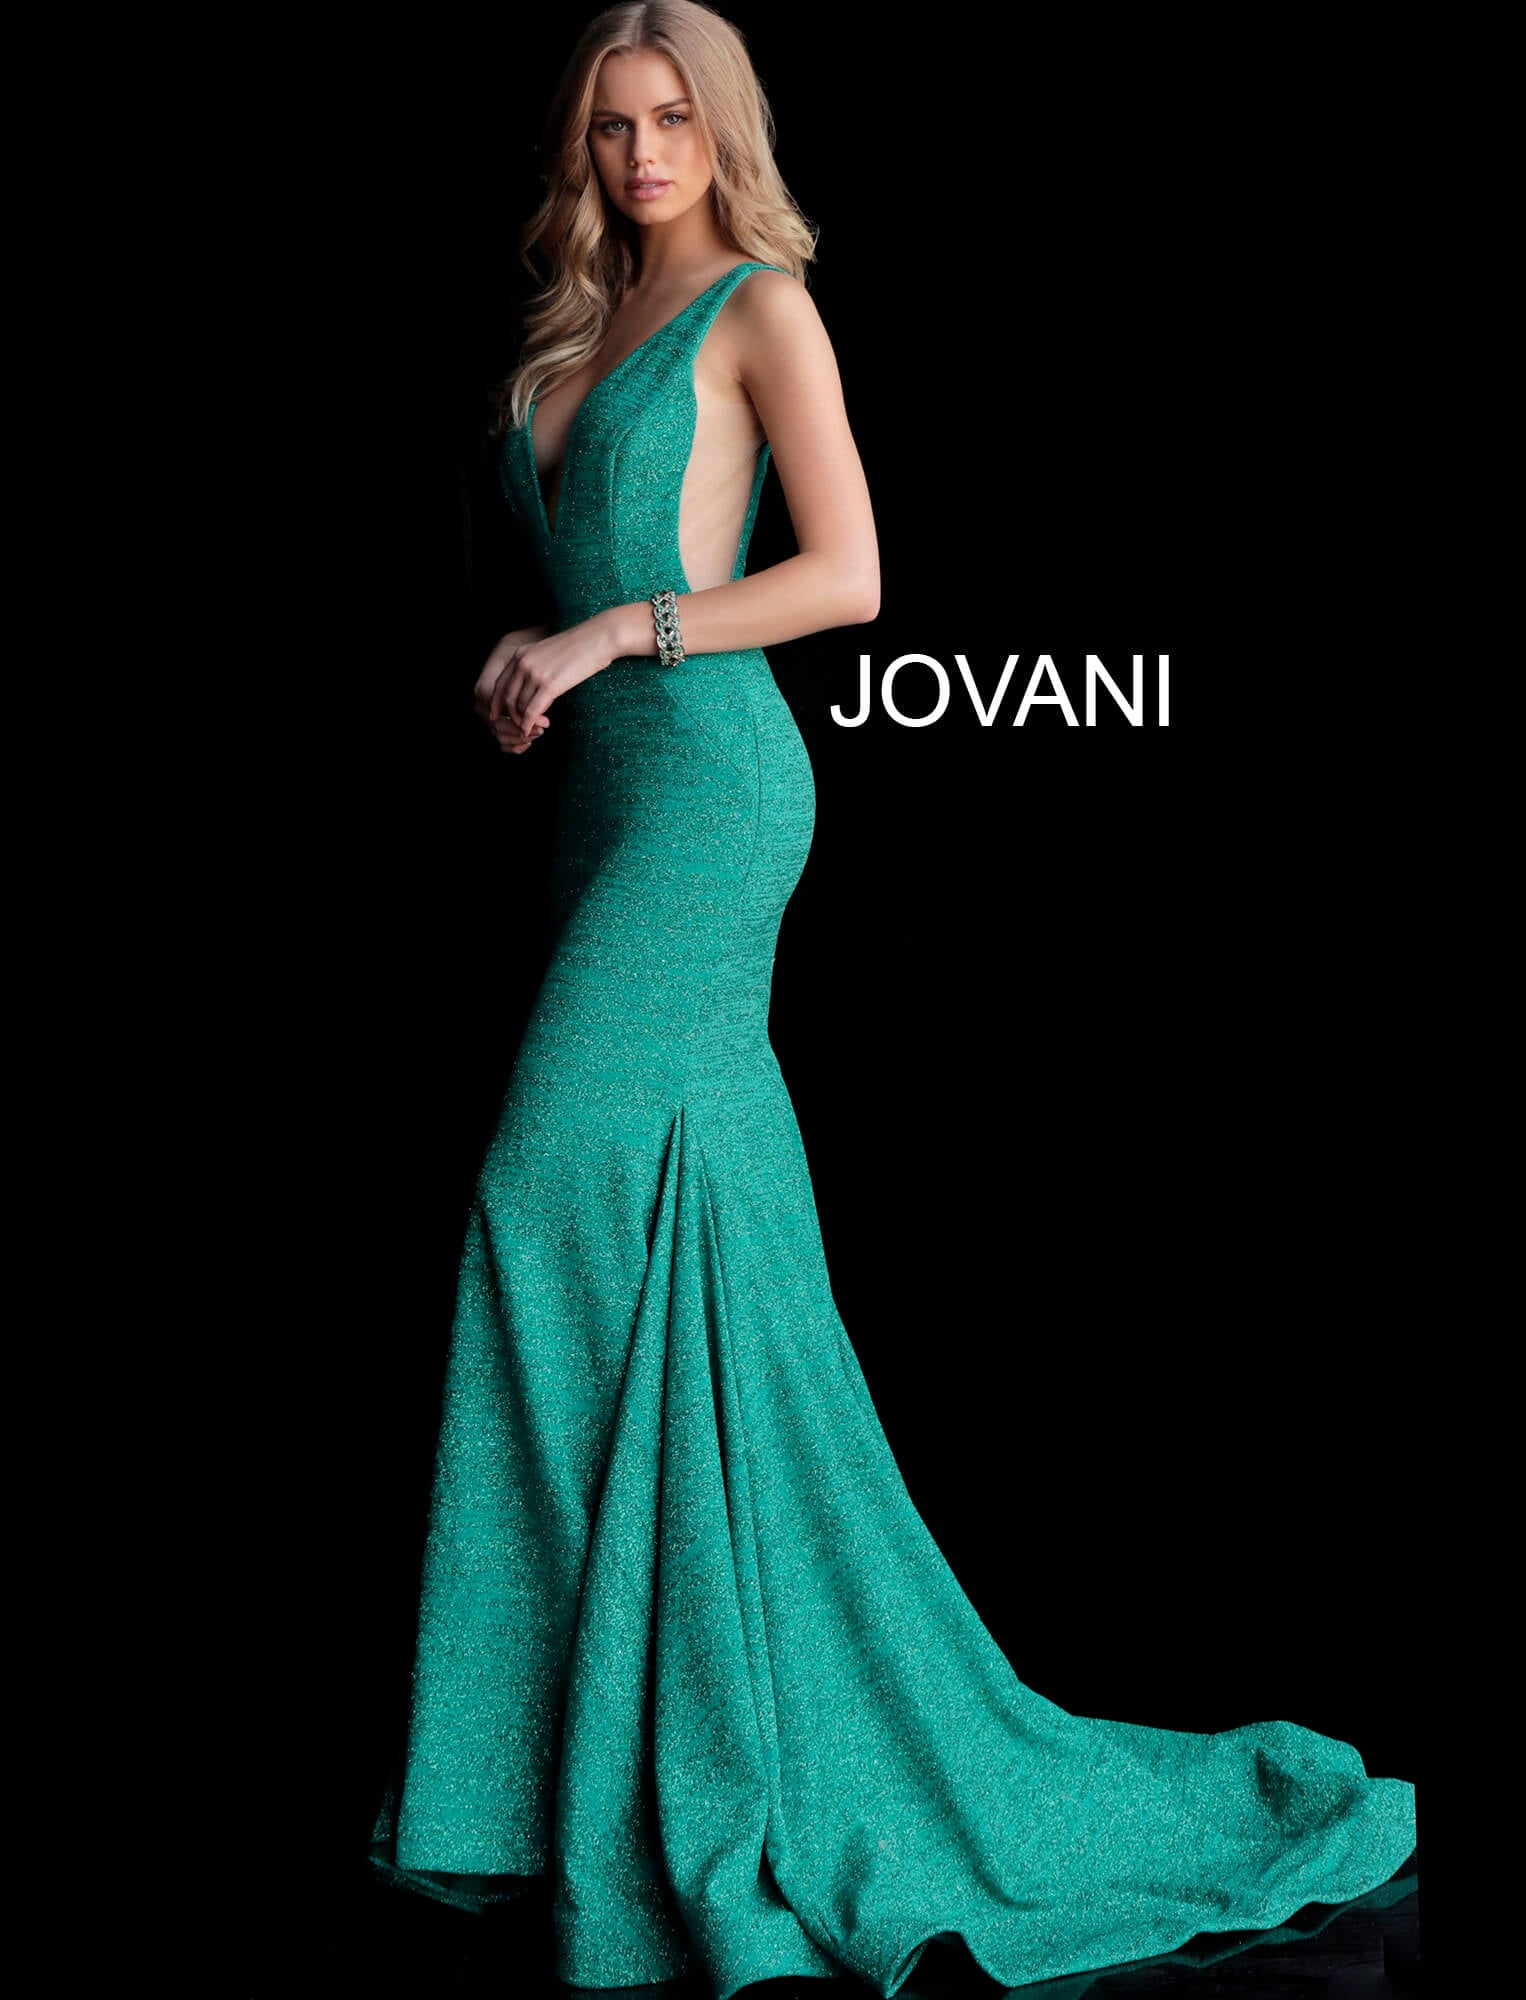 Jovani Jade Plunging Gown - Gissings Boutique